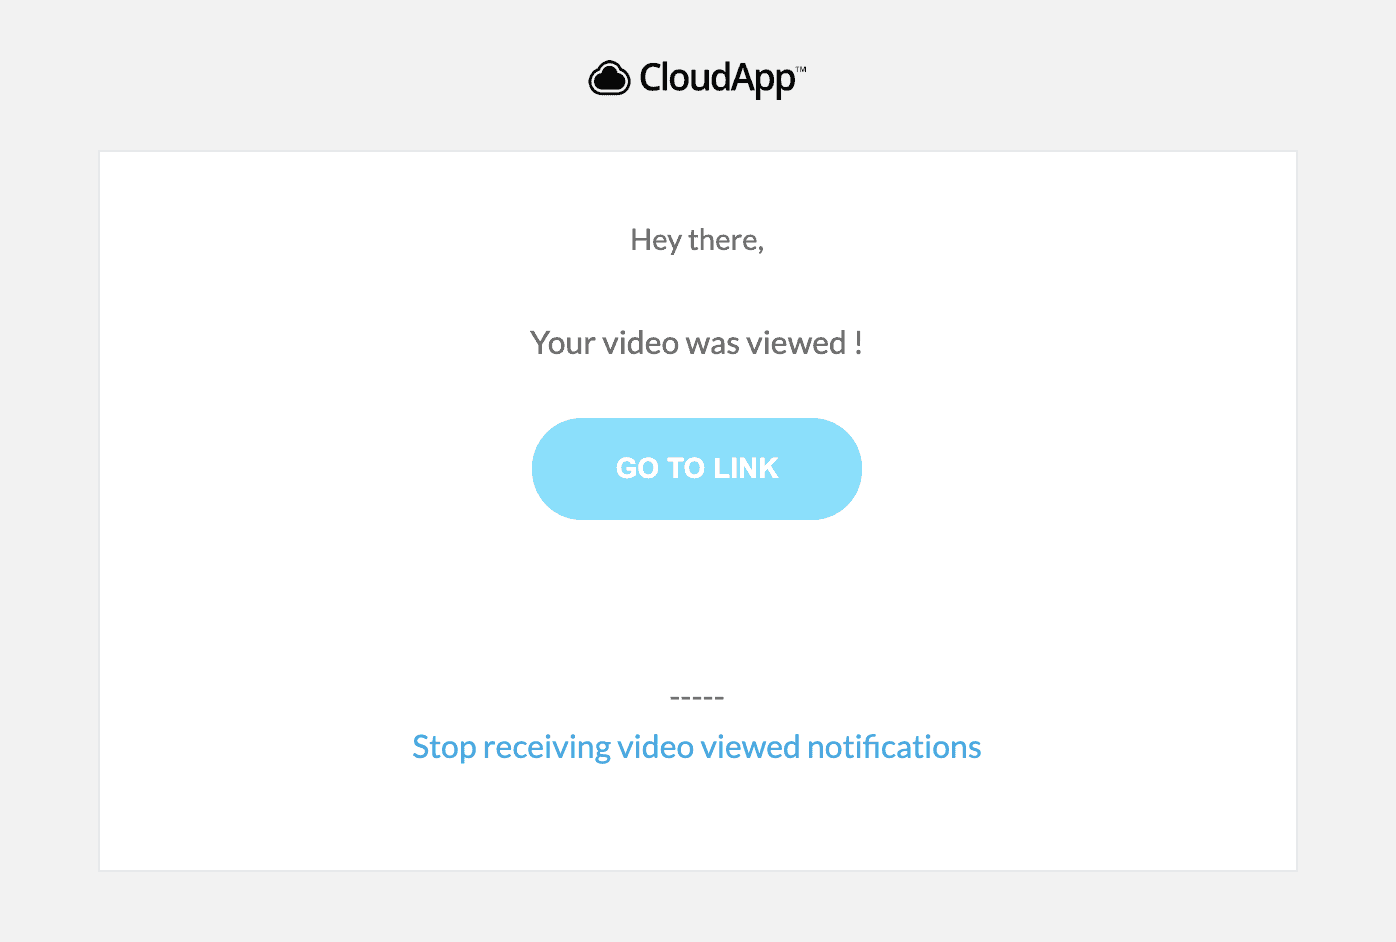 Video View Notifications with CloudApp